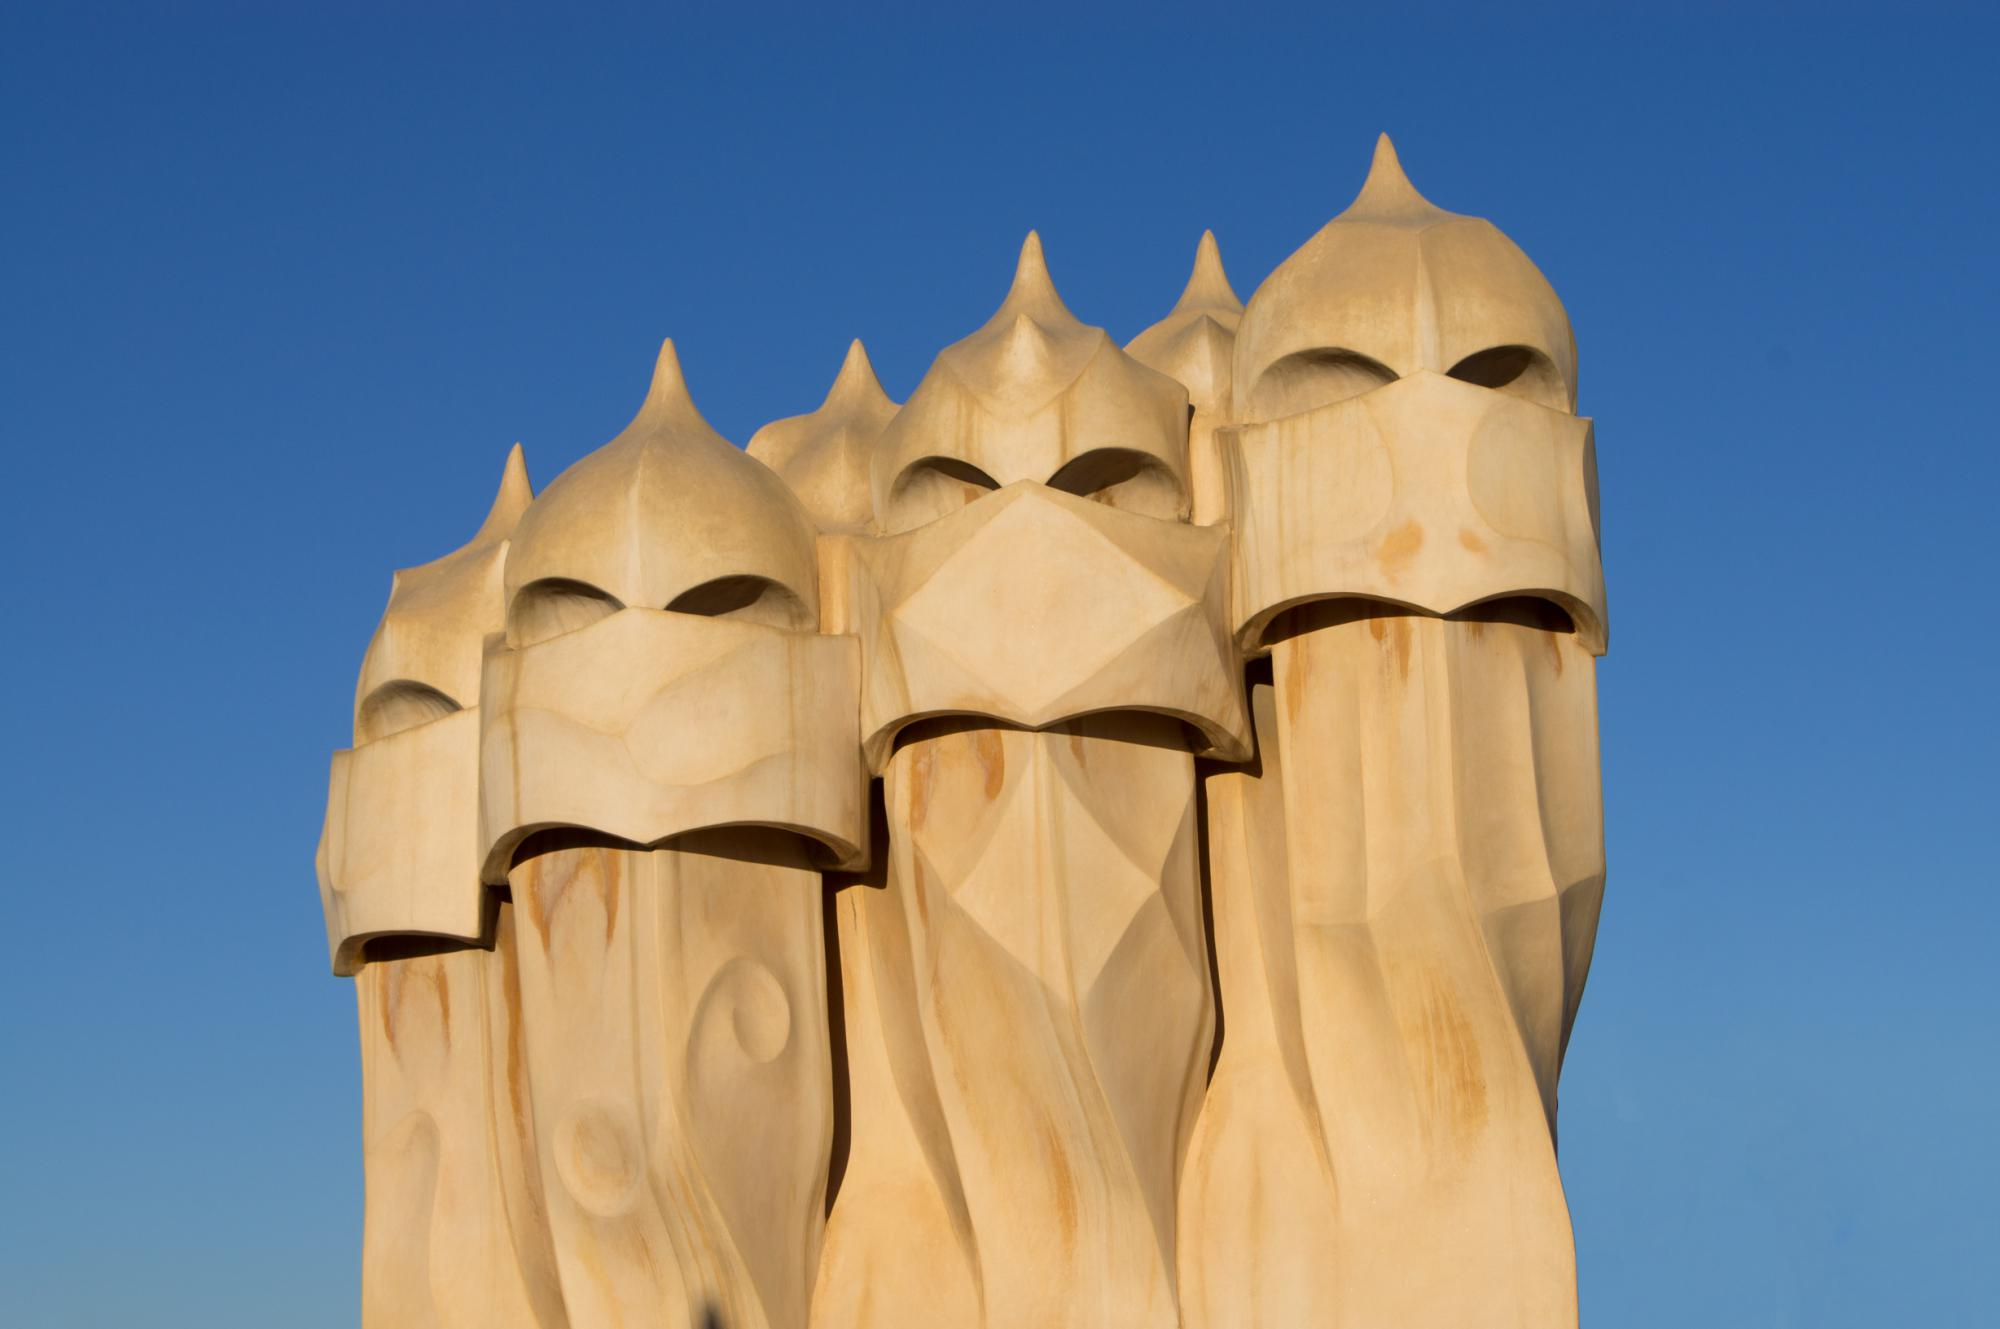 Chimneys on the roof of Casa Milà (La Pedrera) in Barcelona